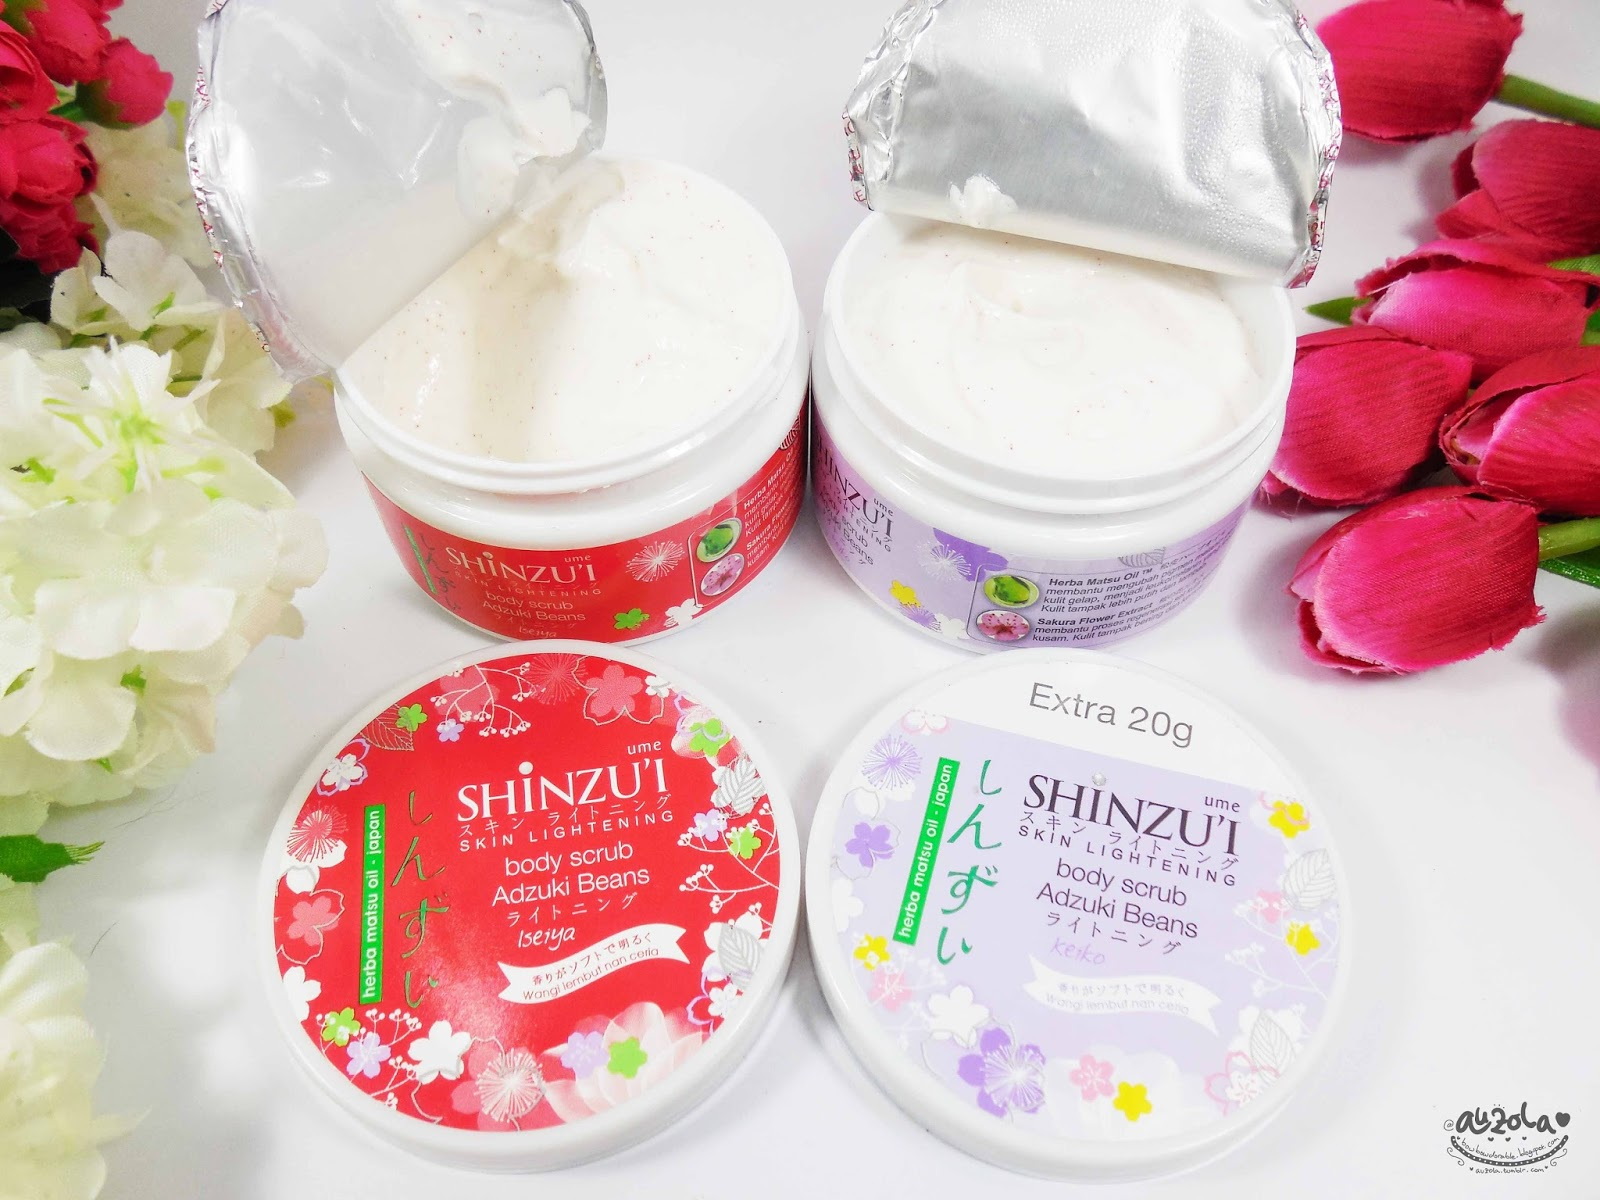 What so special about this Well Shinzu i Ume Body Scrub Adzuki Beans is a dry scrub means you can use it without have to rinse it It s amazing or what